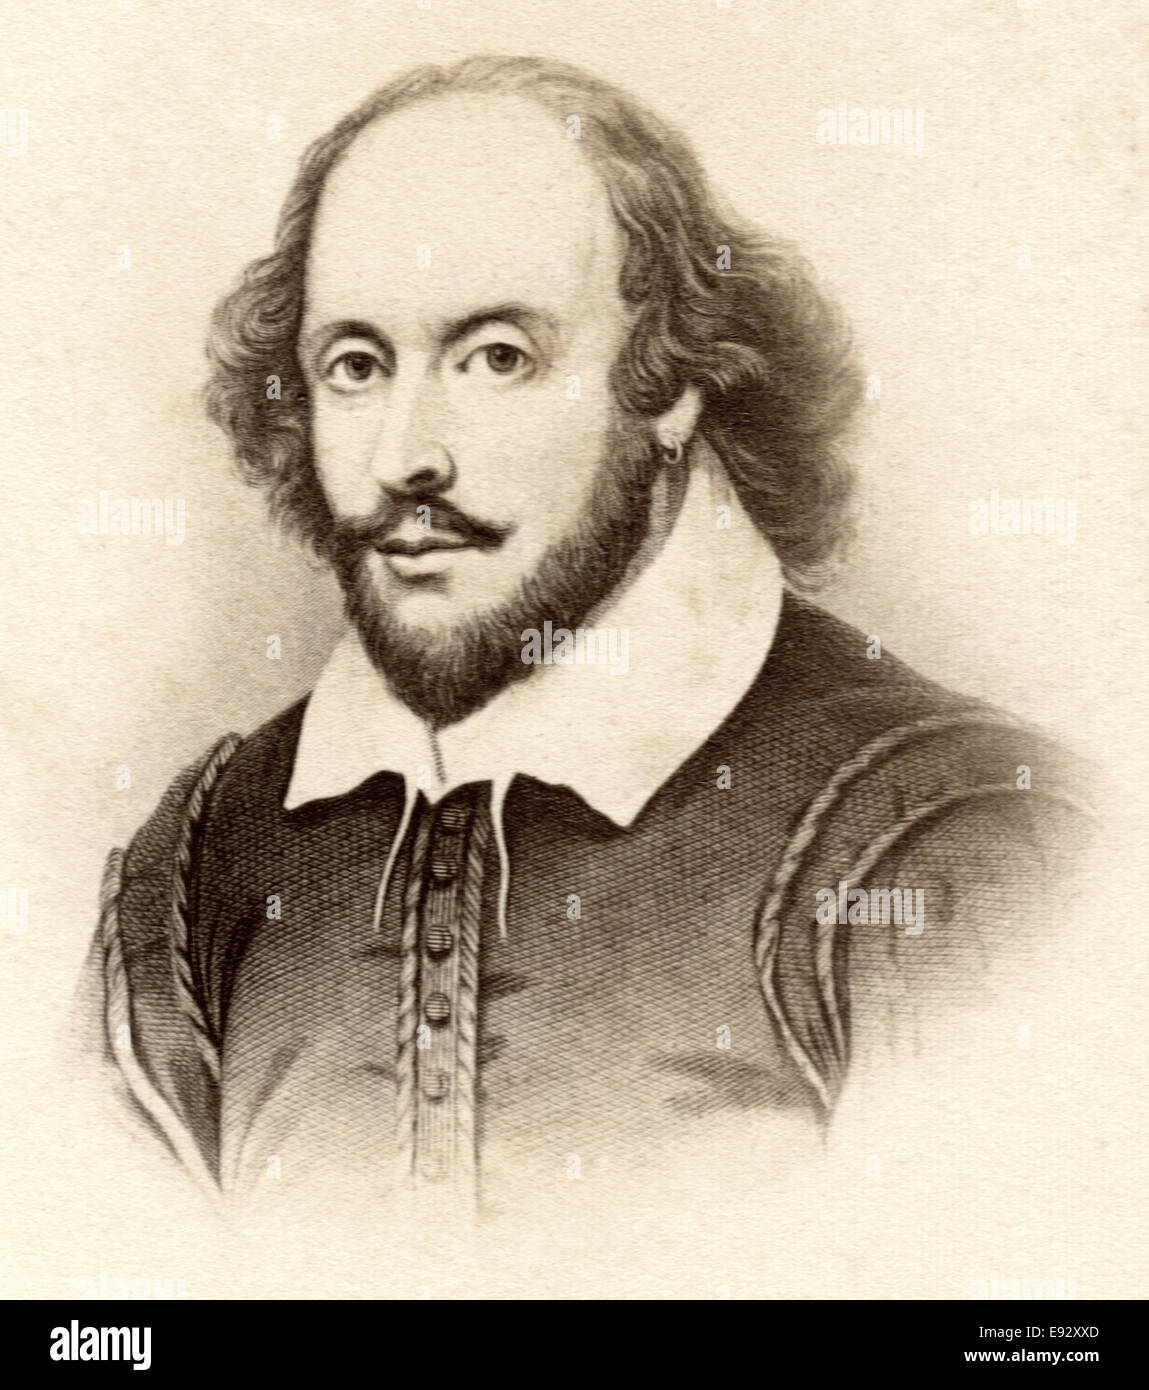 a biography of william shakespeare the english poet and playwright William shakespeare (26 april 1564 (baptised) 23 april 1616) was an english poet, playwright, and actor, widely regarded as the greatest writer in the english language an.